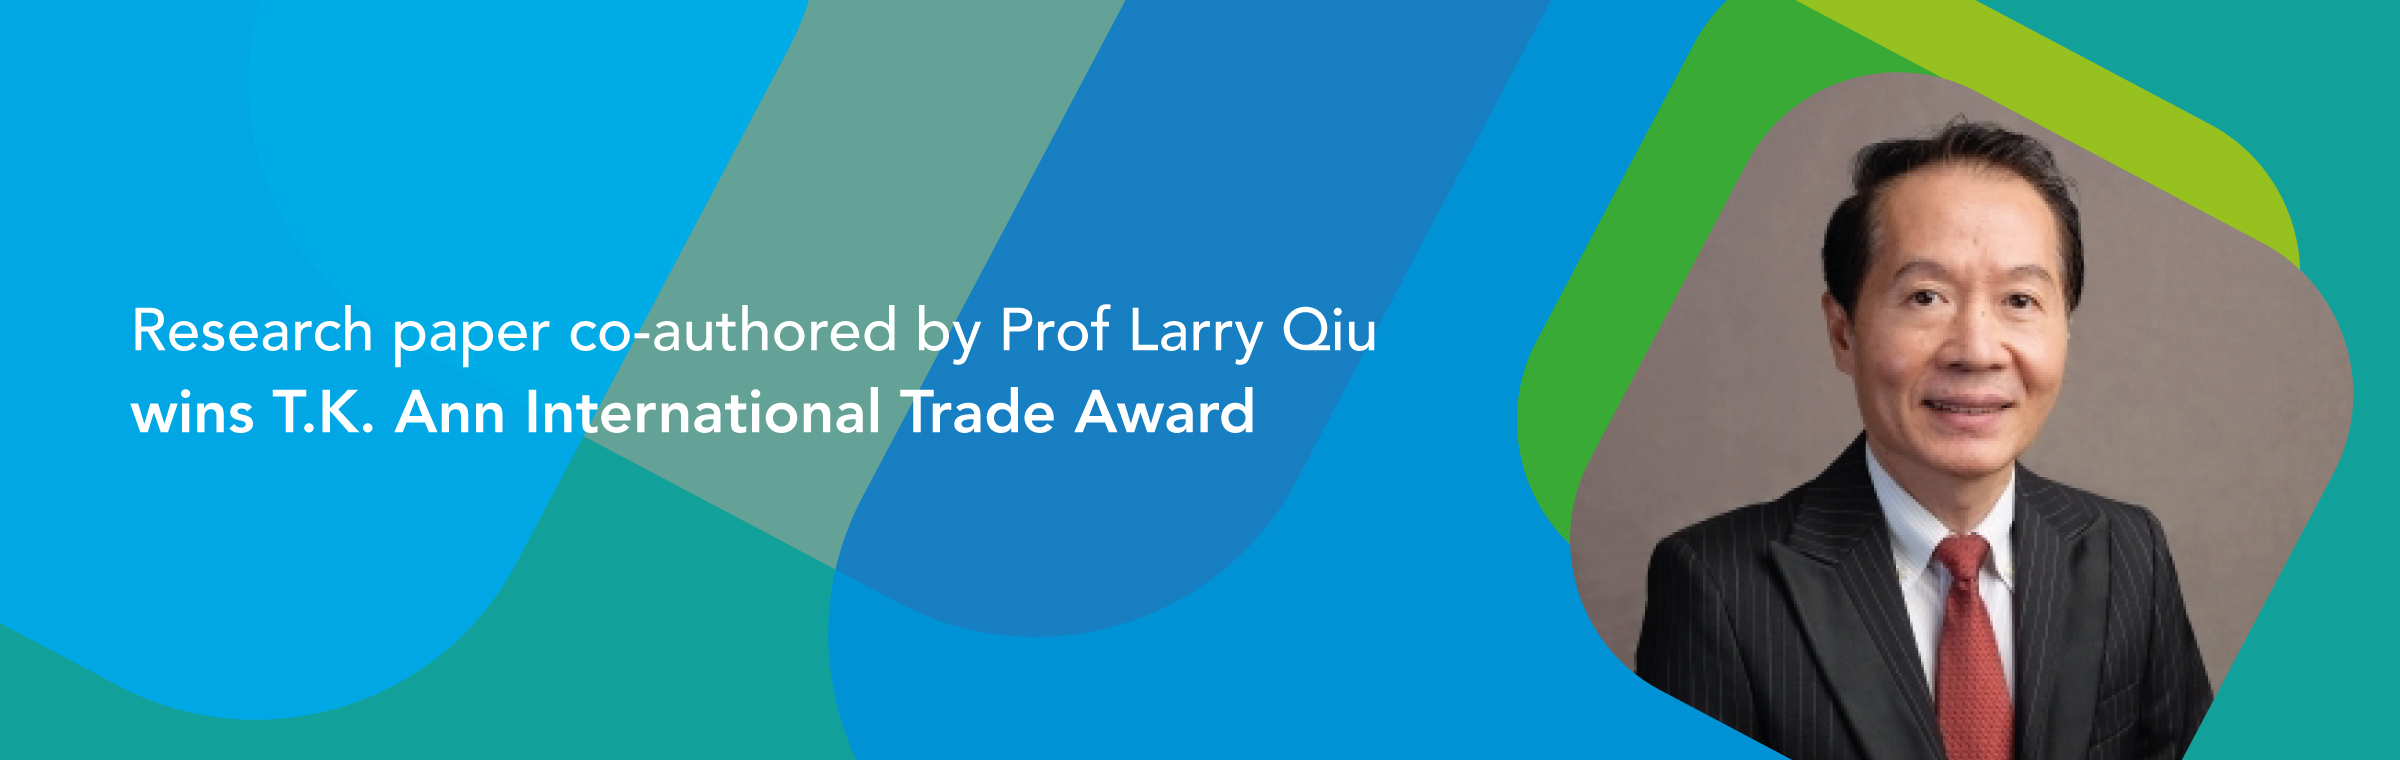 Research paper co-authored by Prof Larry Qiu wins T.K. Ann International Trade Award